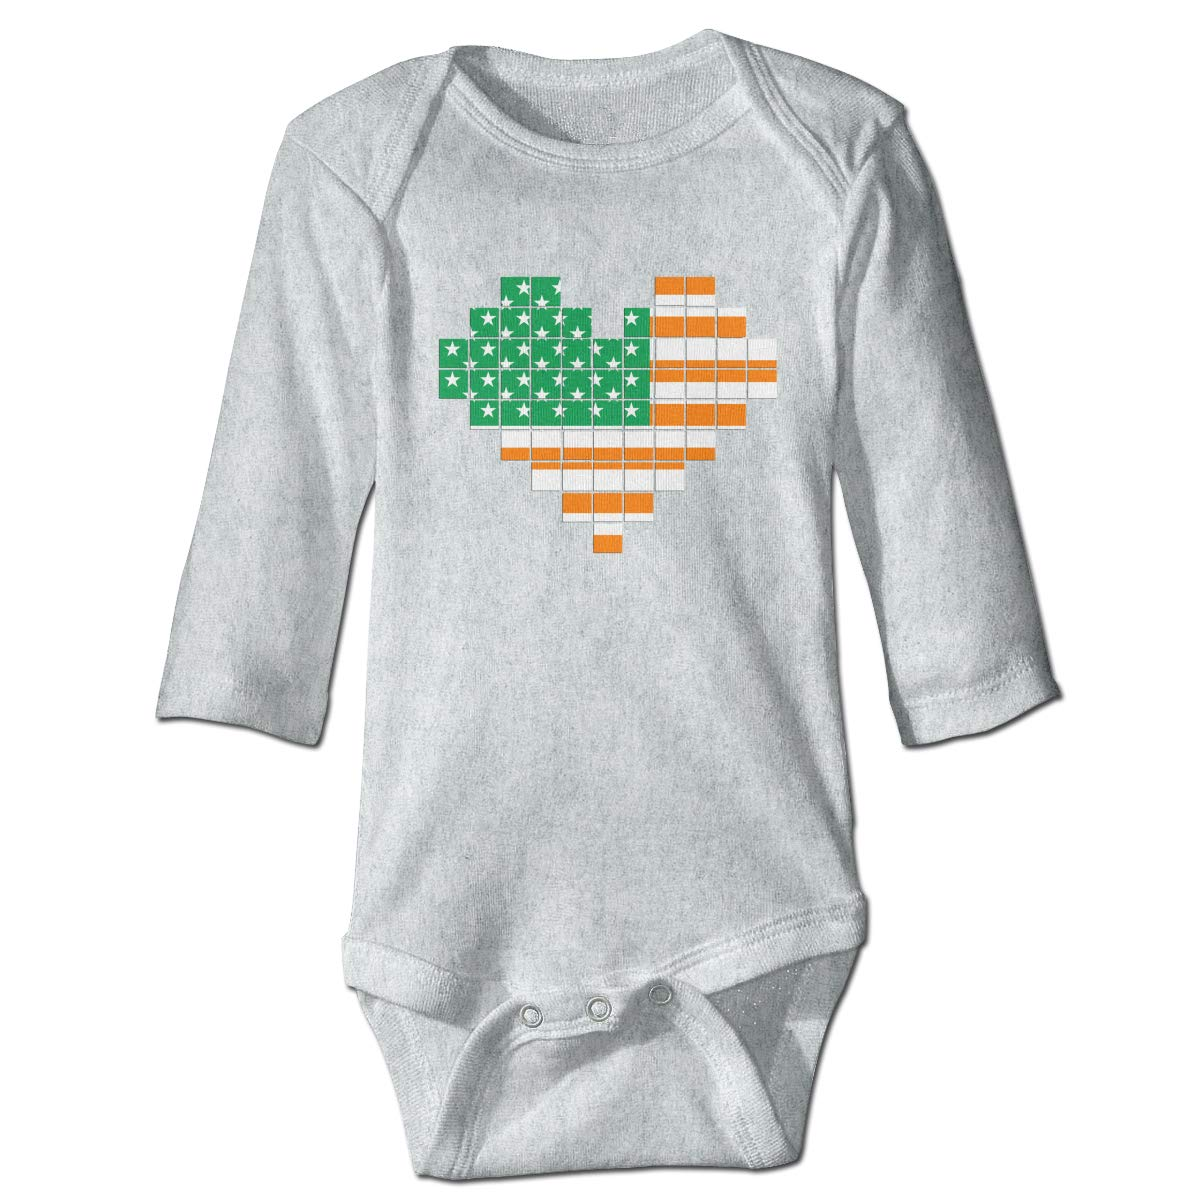 Infant Baby Boys Girls Long Sleeve Romper Bodysuit Irish Flag of The United States Puzzle Heart Playsuit Outfit Clothes